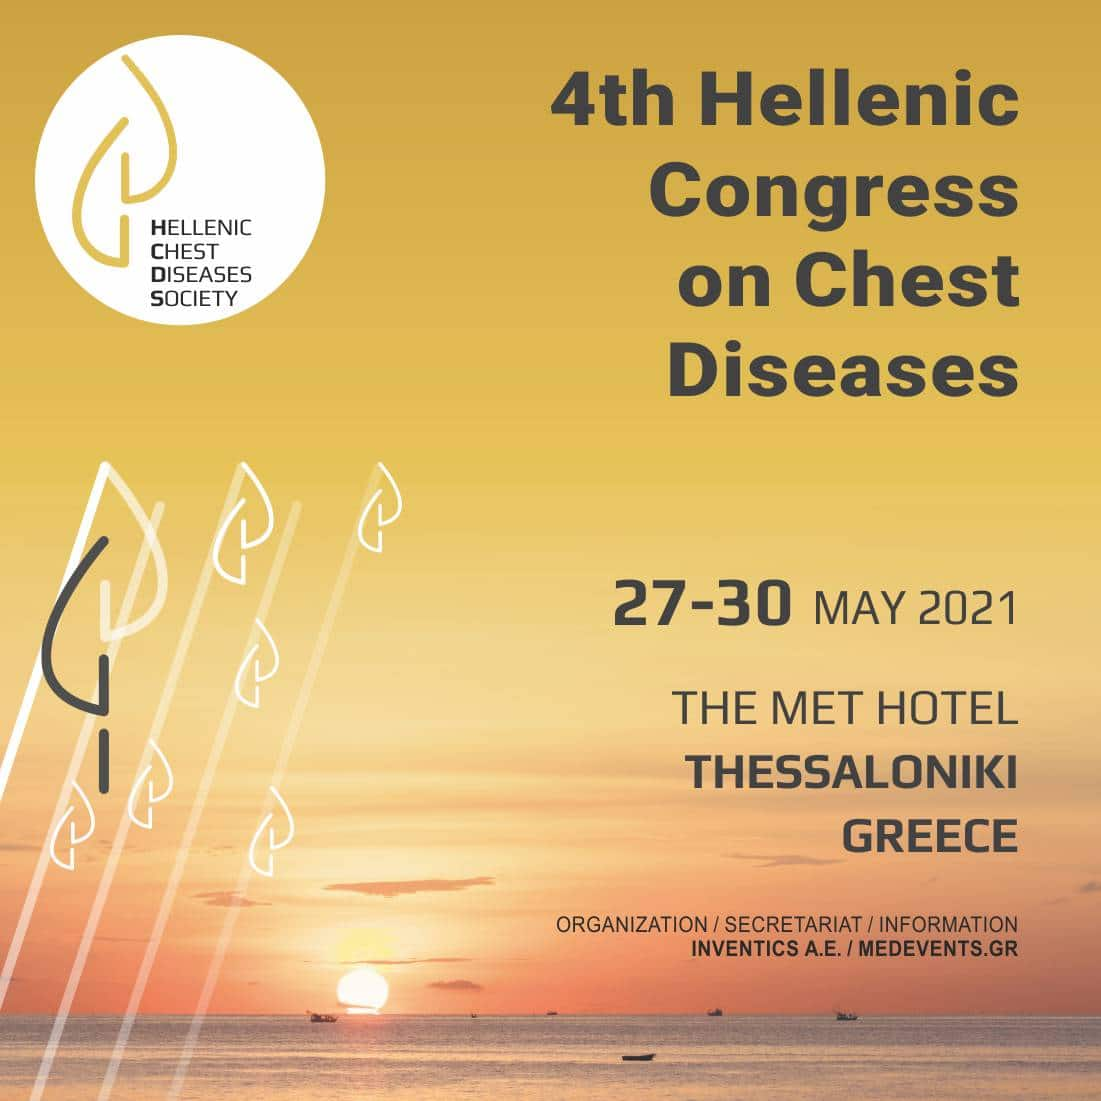 4th_Hellenic_Congress_on_Chest_Diseases_2021_banner2